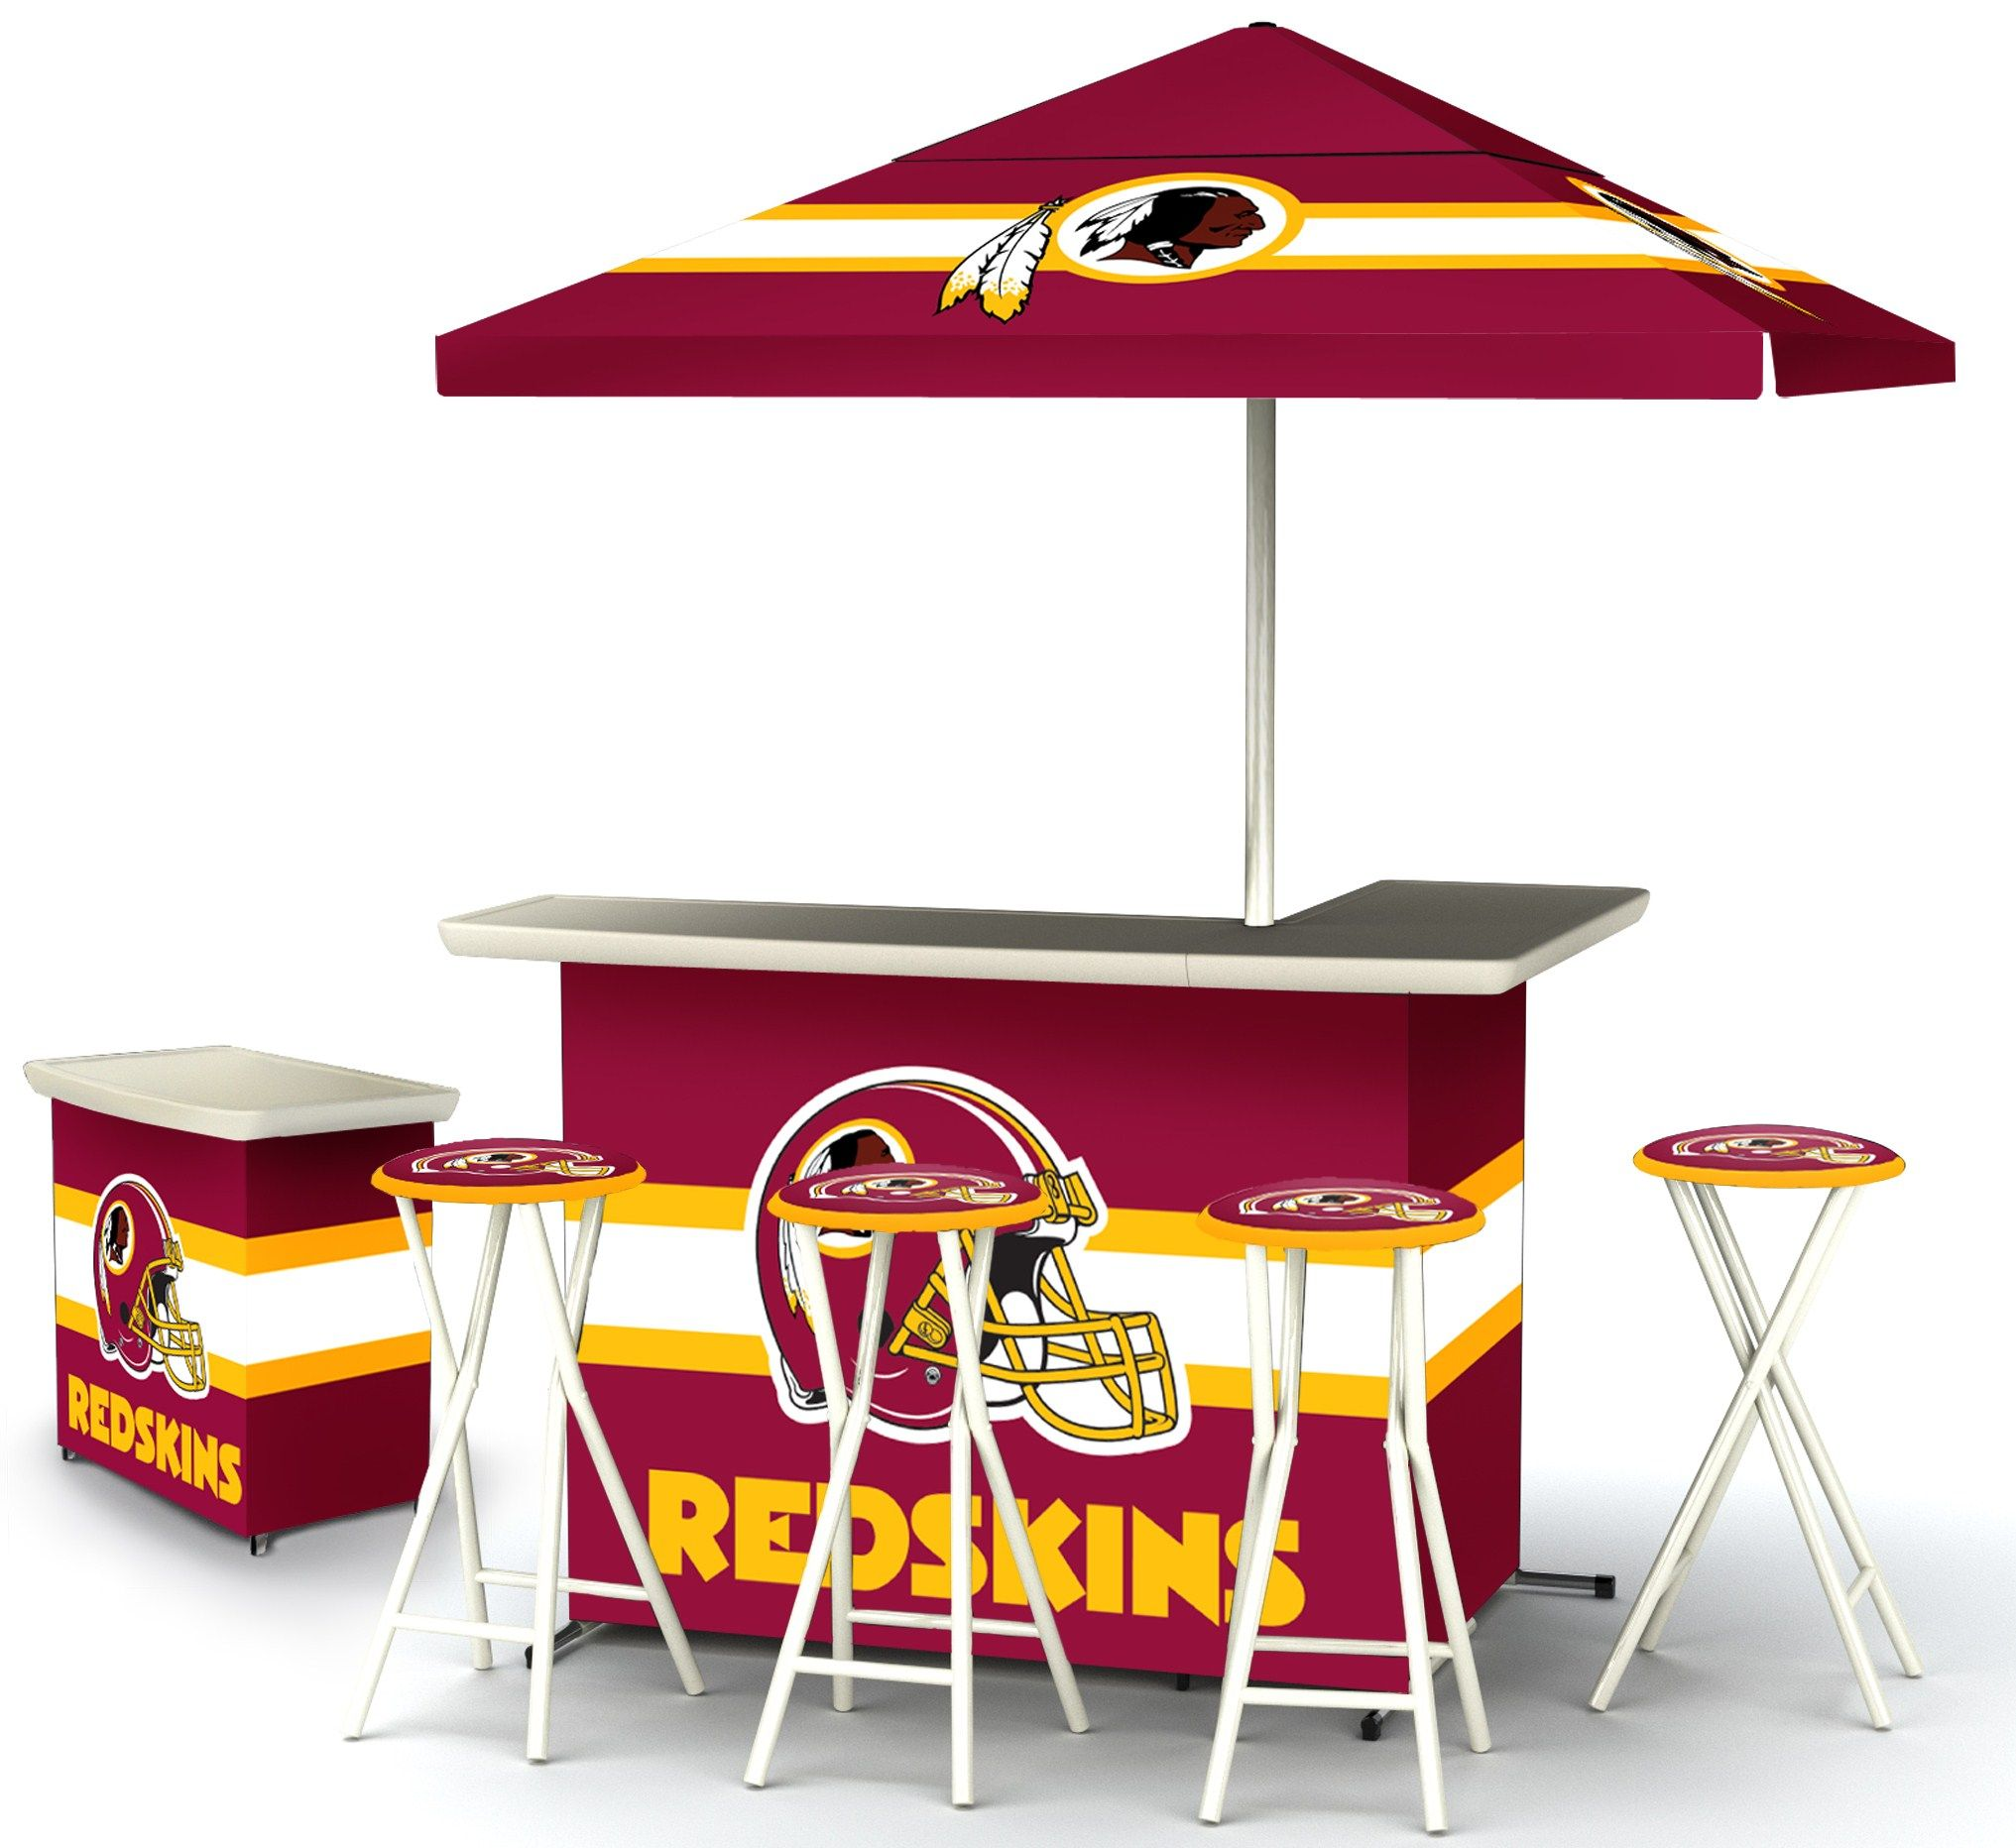 Get set for summer outdoor entertaining with a #Redskins